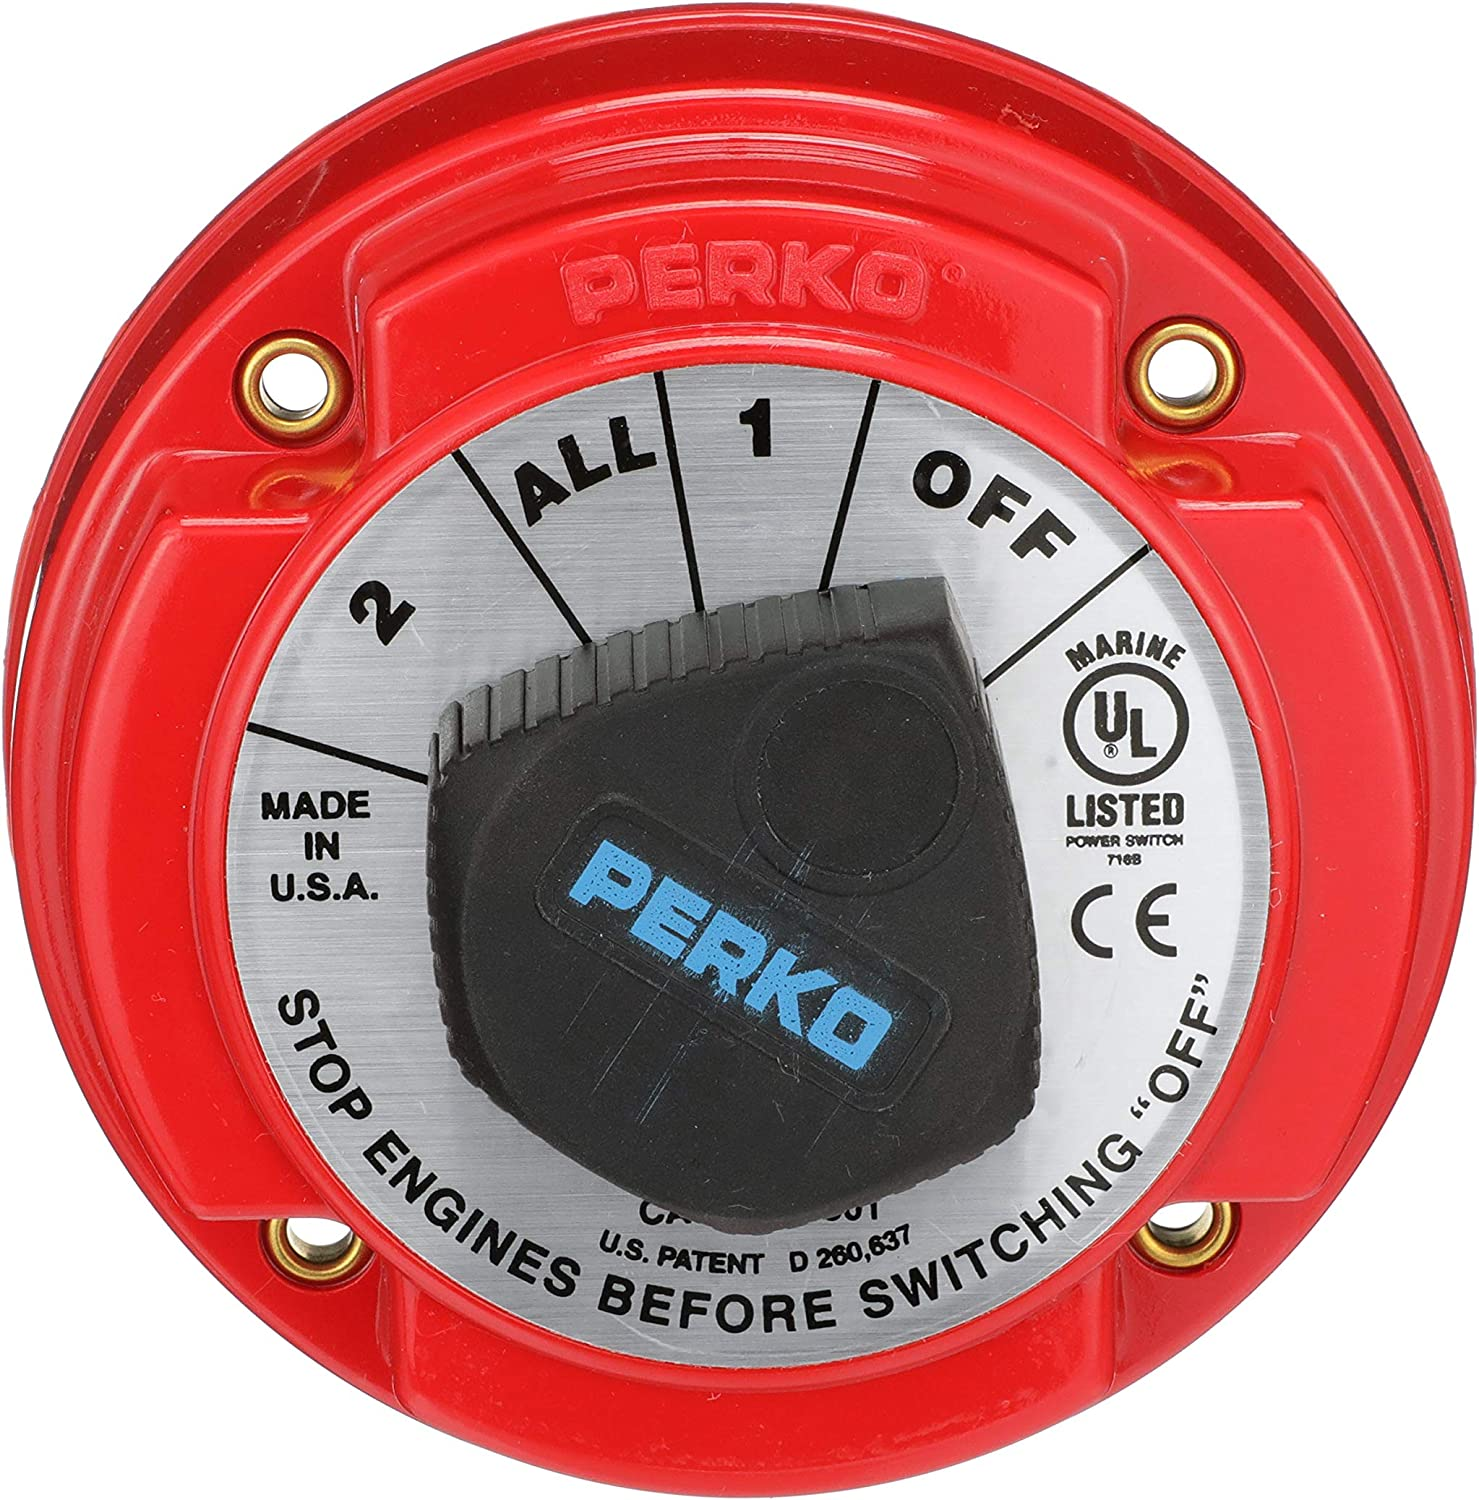 Seachoice 11501 Battery Selector Switch, Red, One size : Boating Battery Switches : Sports & Outdoors